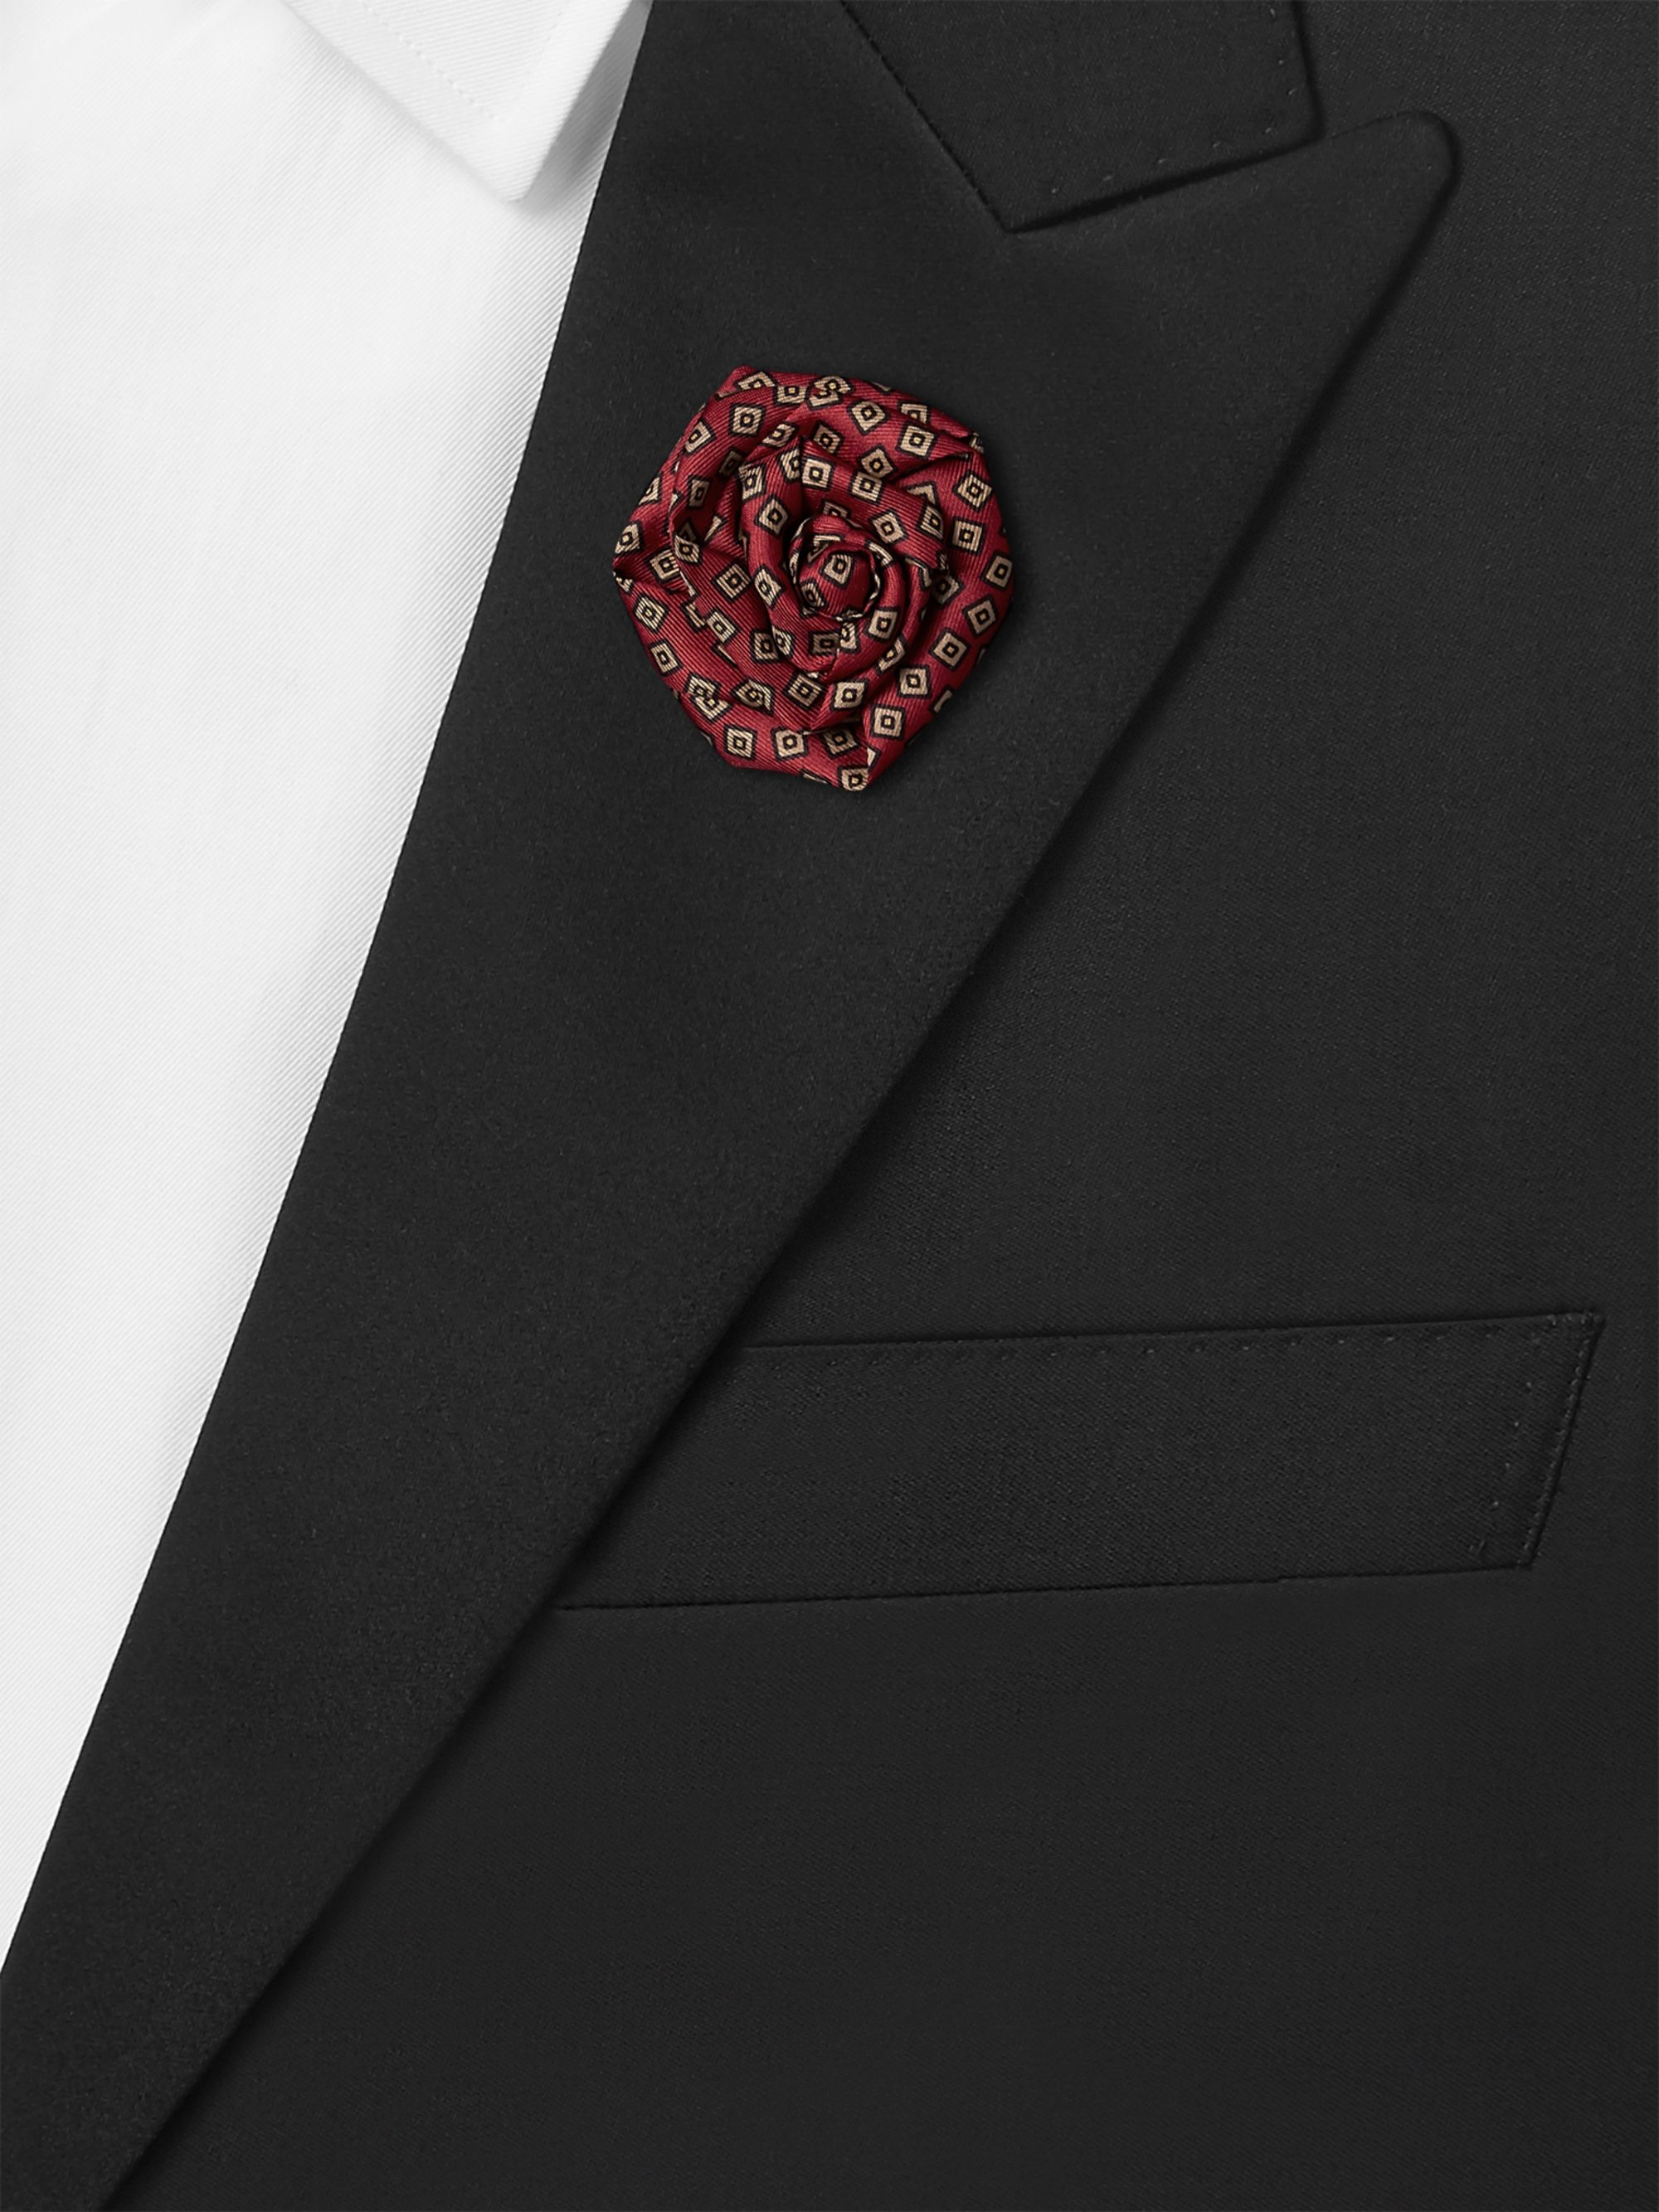 Charvet Printed Silk-Faille Flower Lapel Pin